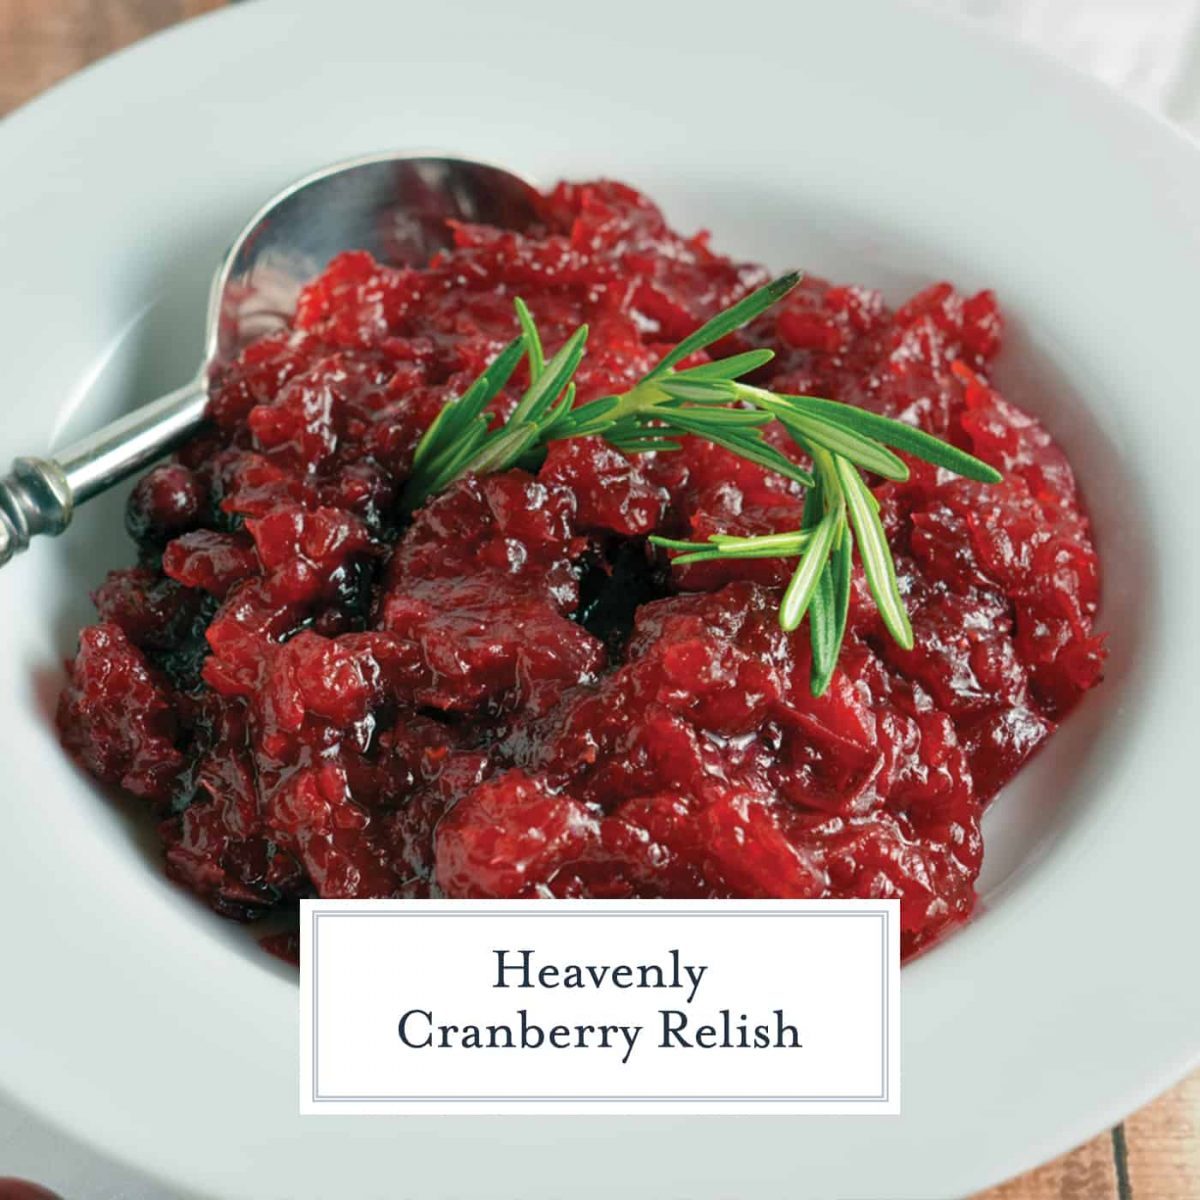 Cranberry Relish An Instant Homemade Turkey Day Classic